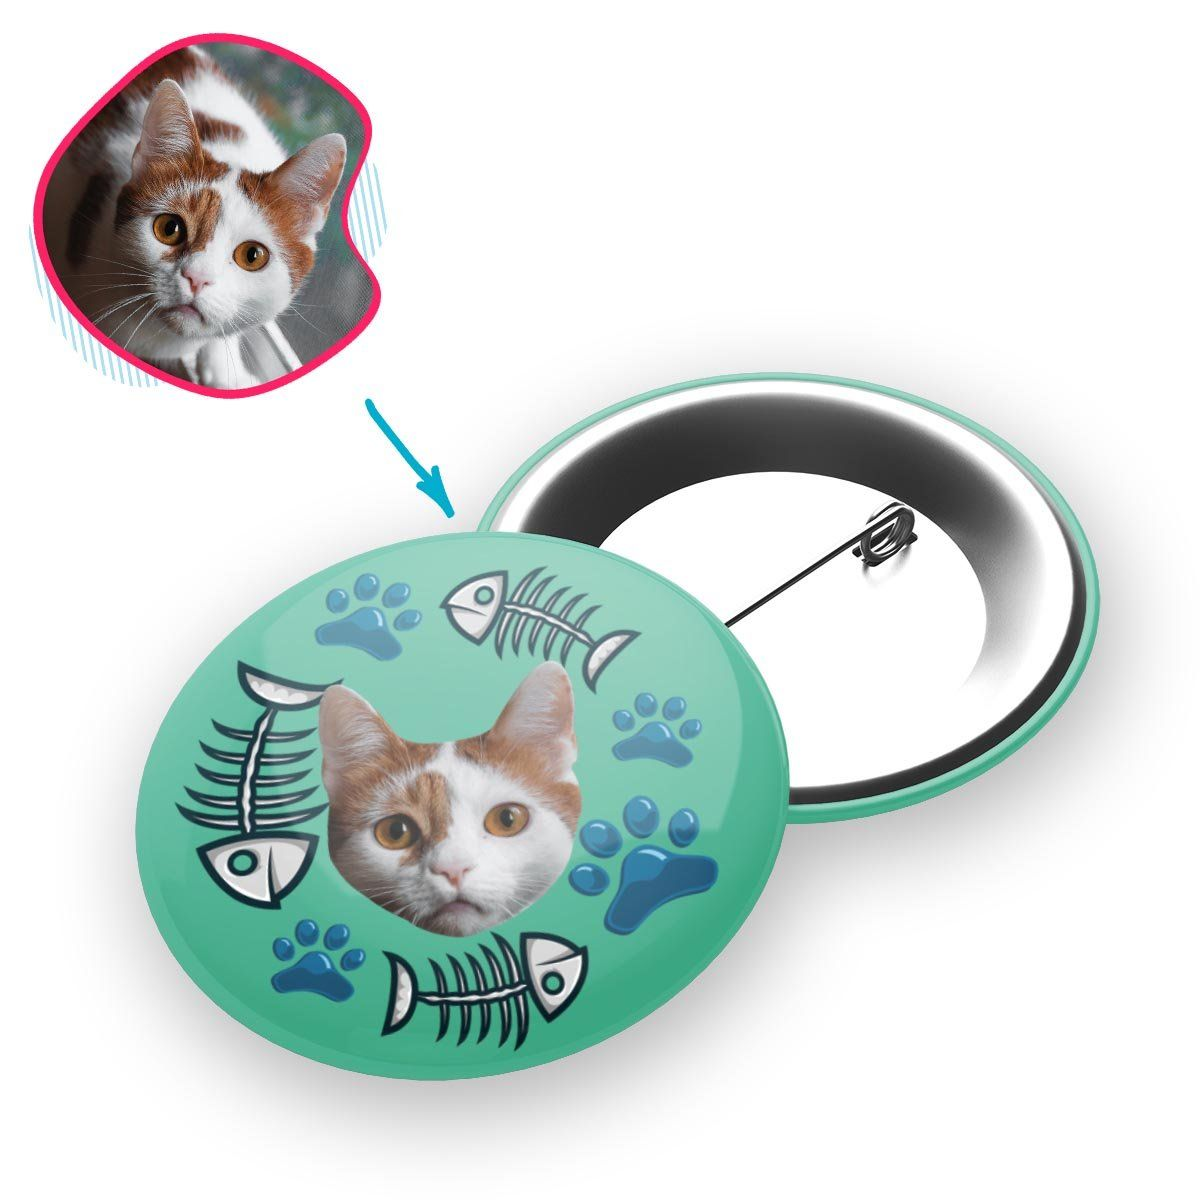 mint Cat pin personalized with photo of face printed on it